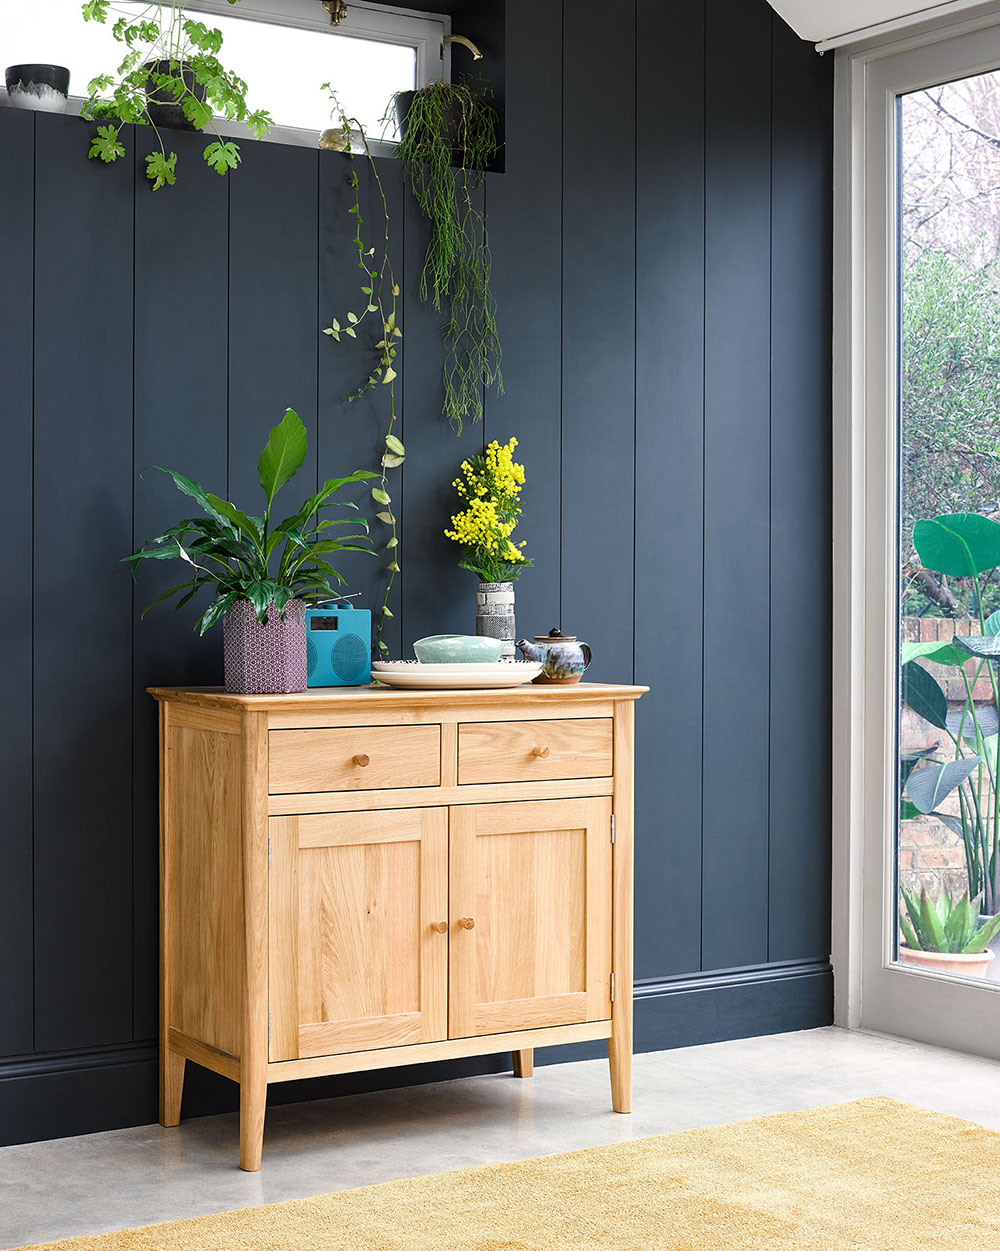 Oak Sideboard in dining room